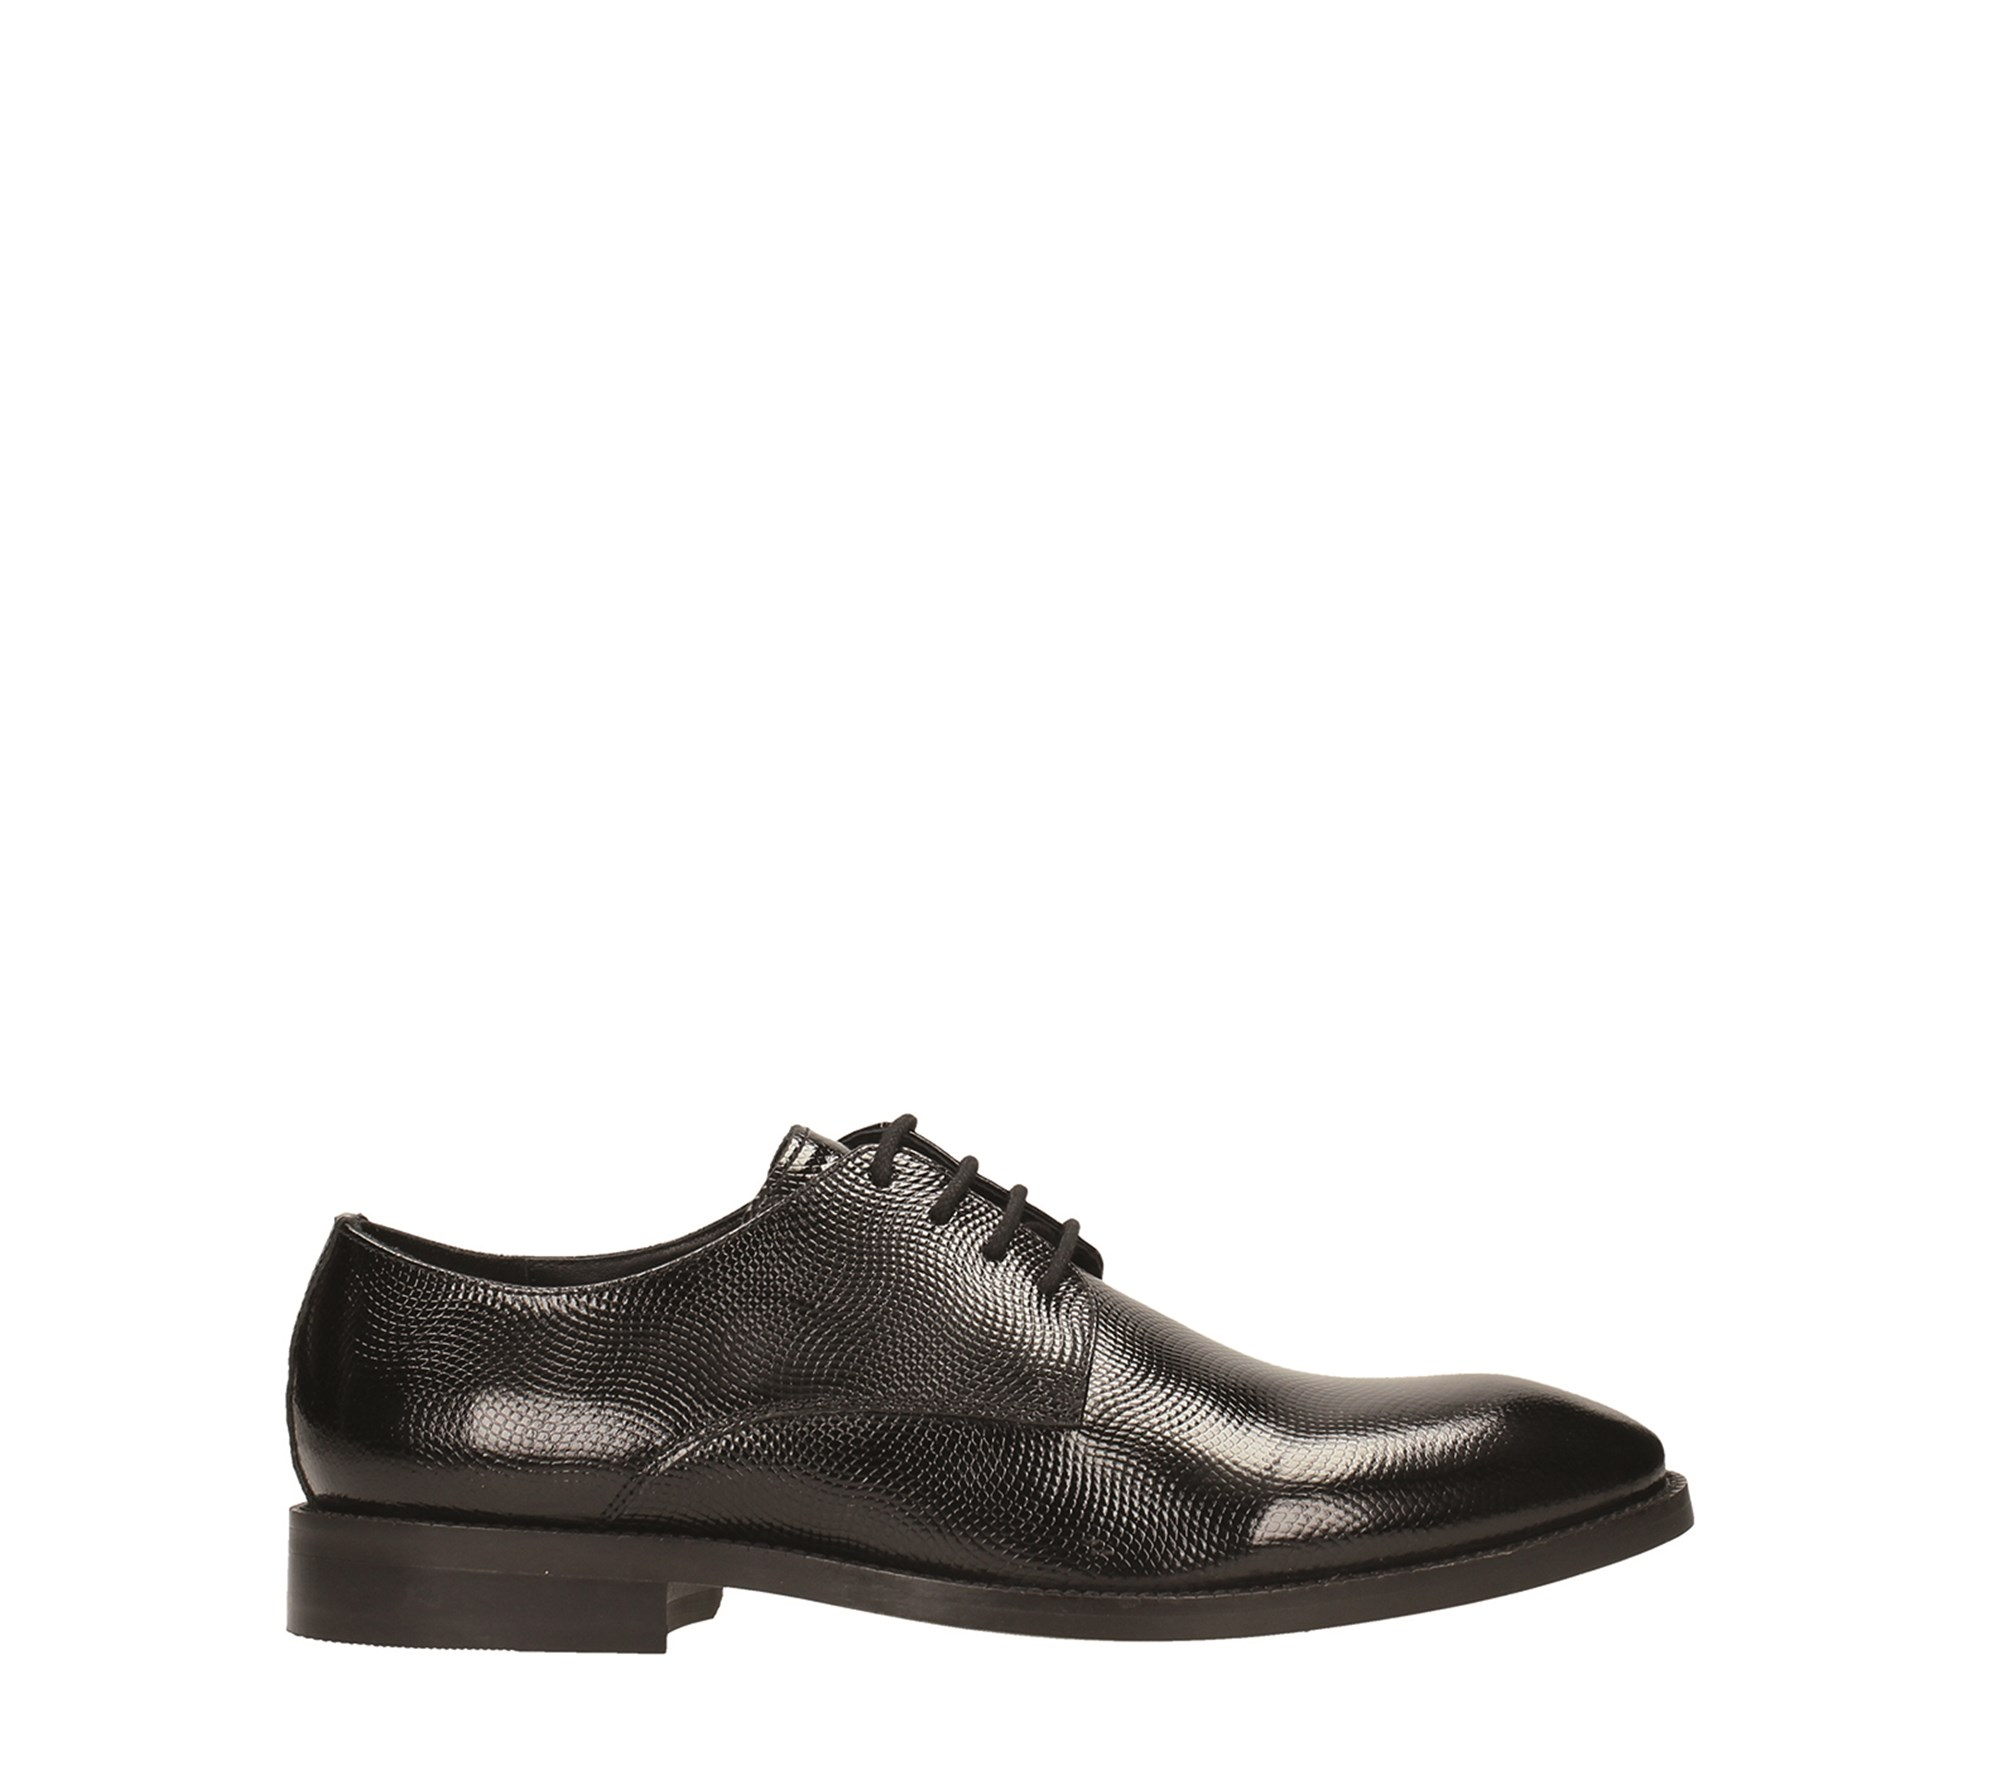 Tata Italia Shoes Man Derby VR-160-2